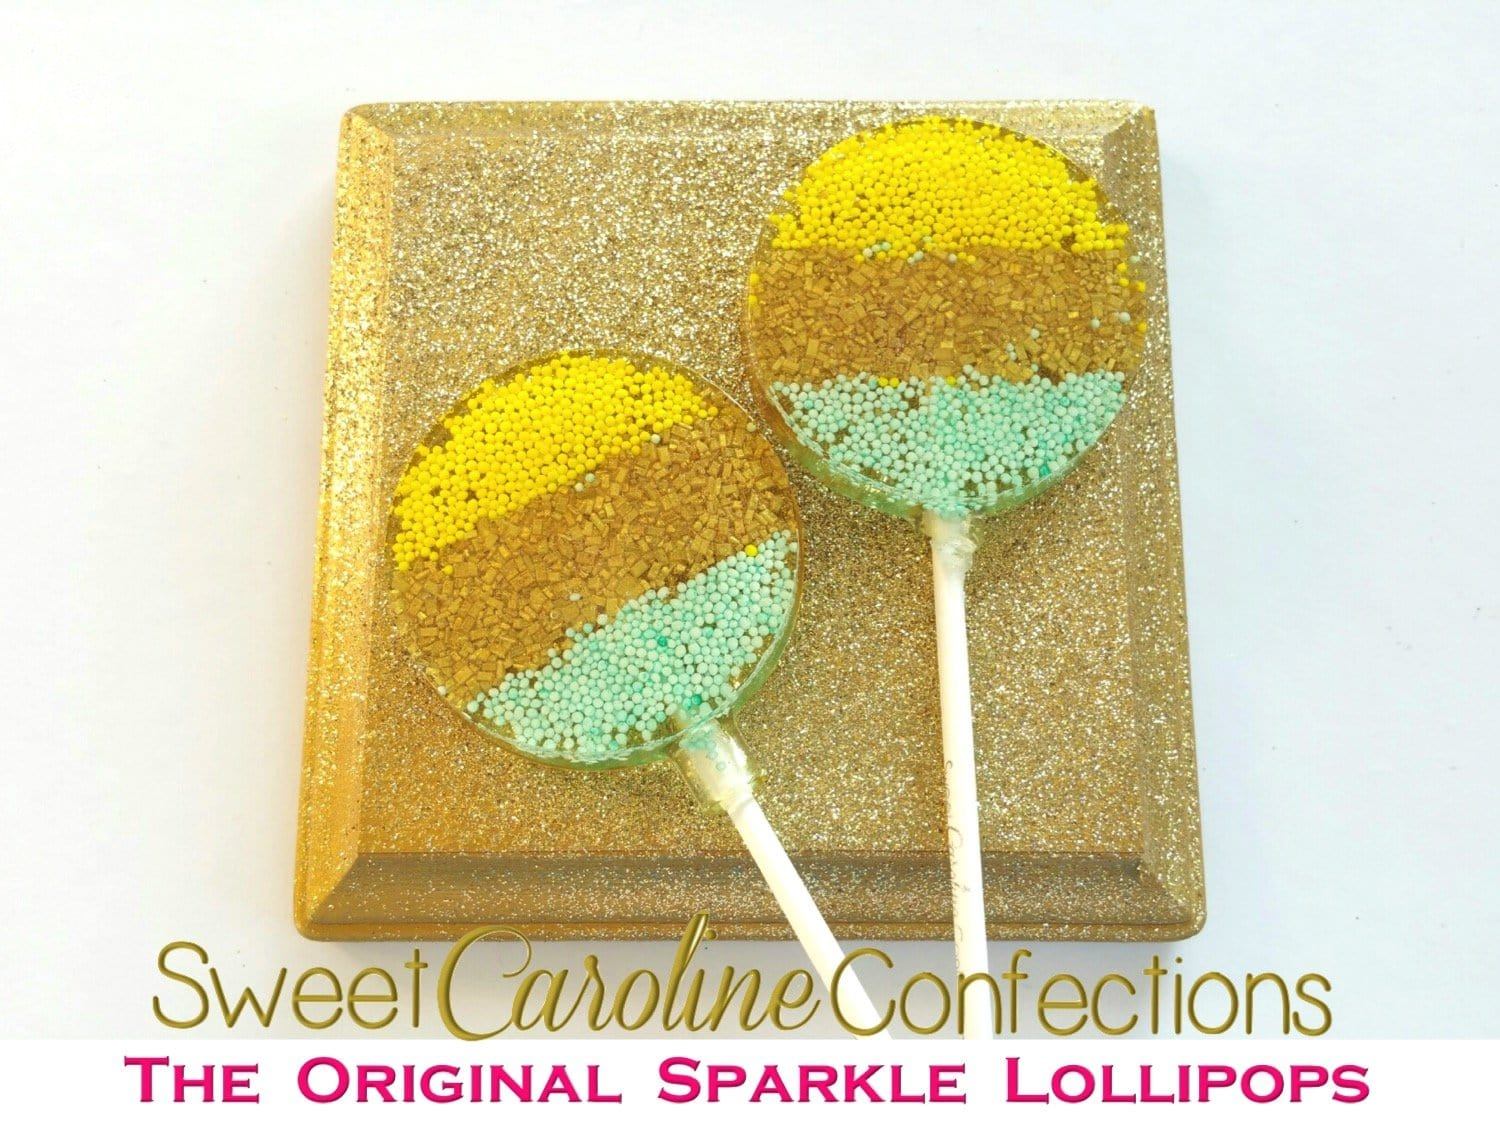 Yellow+Gold+Light Aqua Lollipops - Set of 6 - Sweet Caroline Confections | The Original Sparkle Lollipops